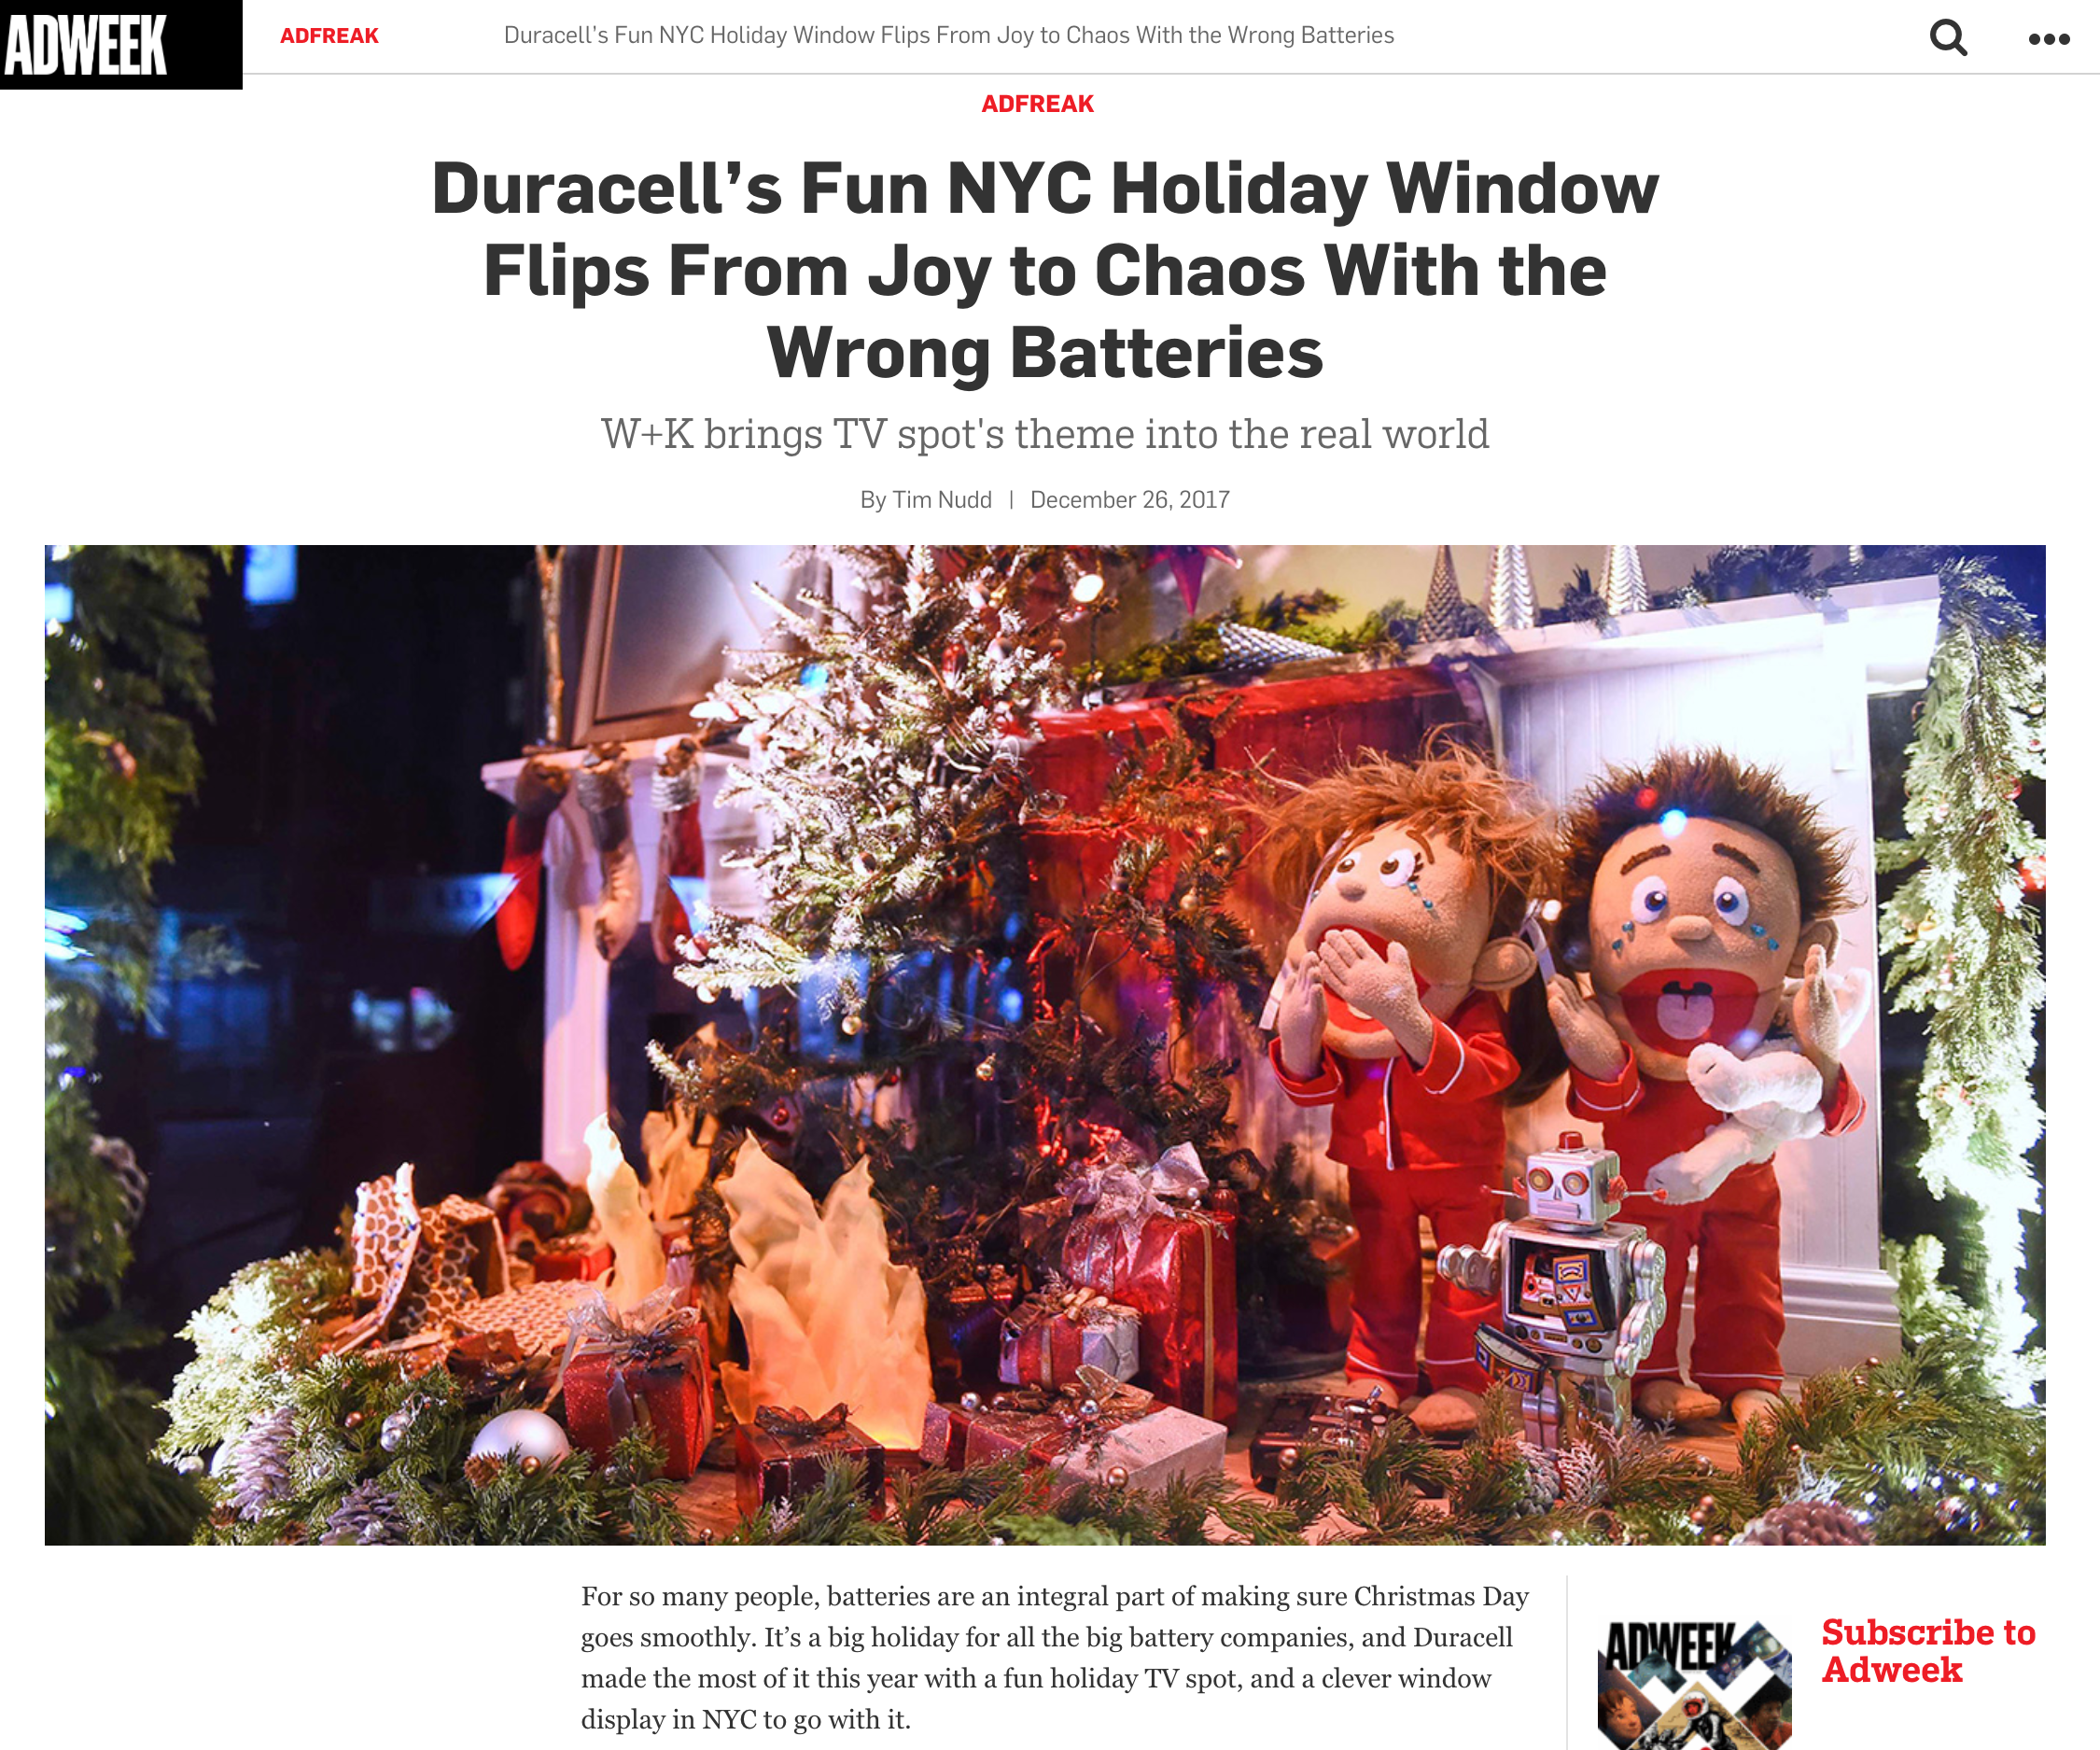 Adweek - Duracell Pop-up Holiday Window